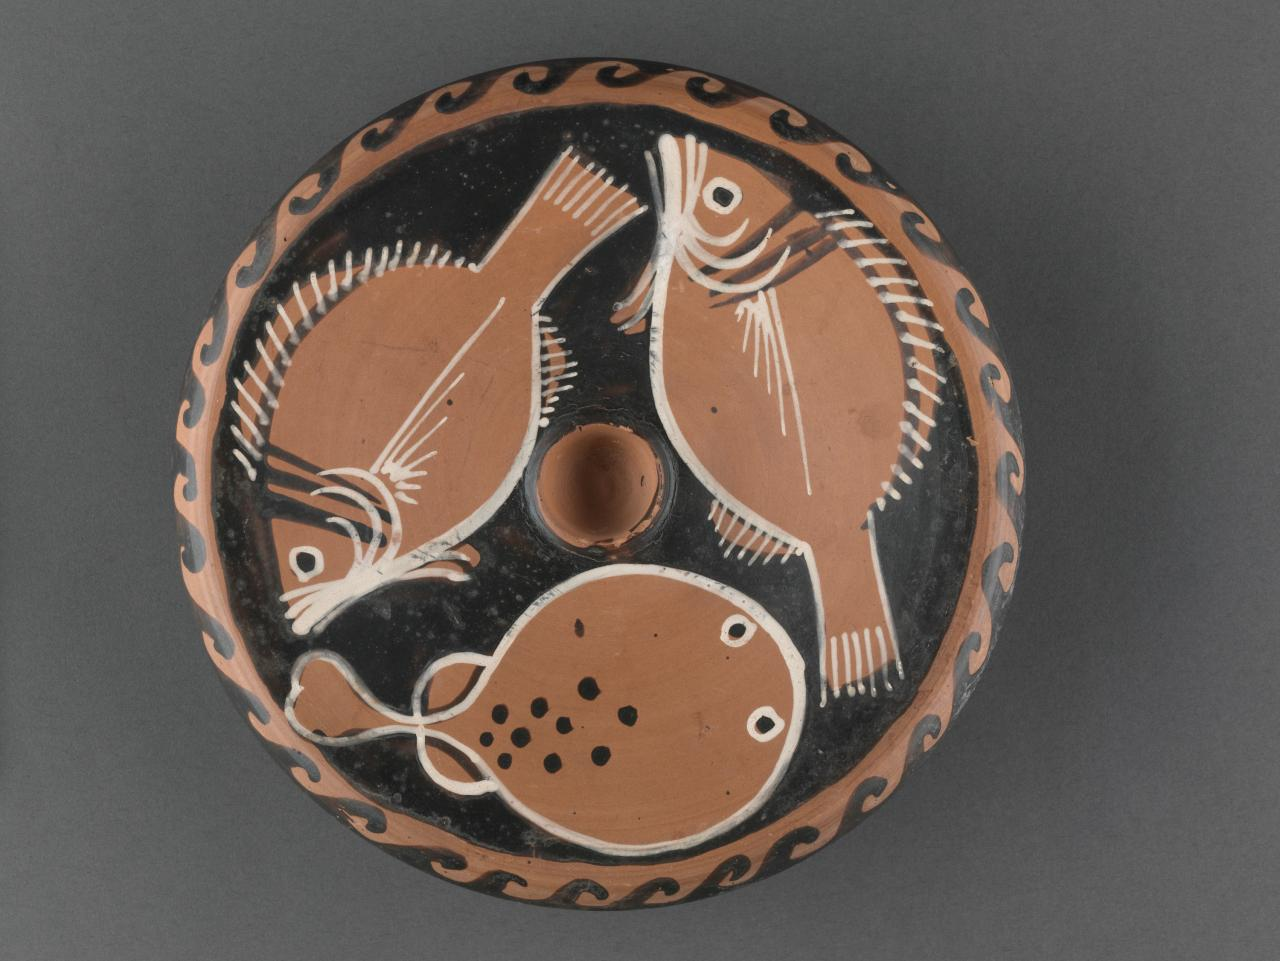 Fish plate (Campanian red-figure ware)